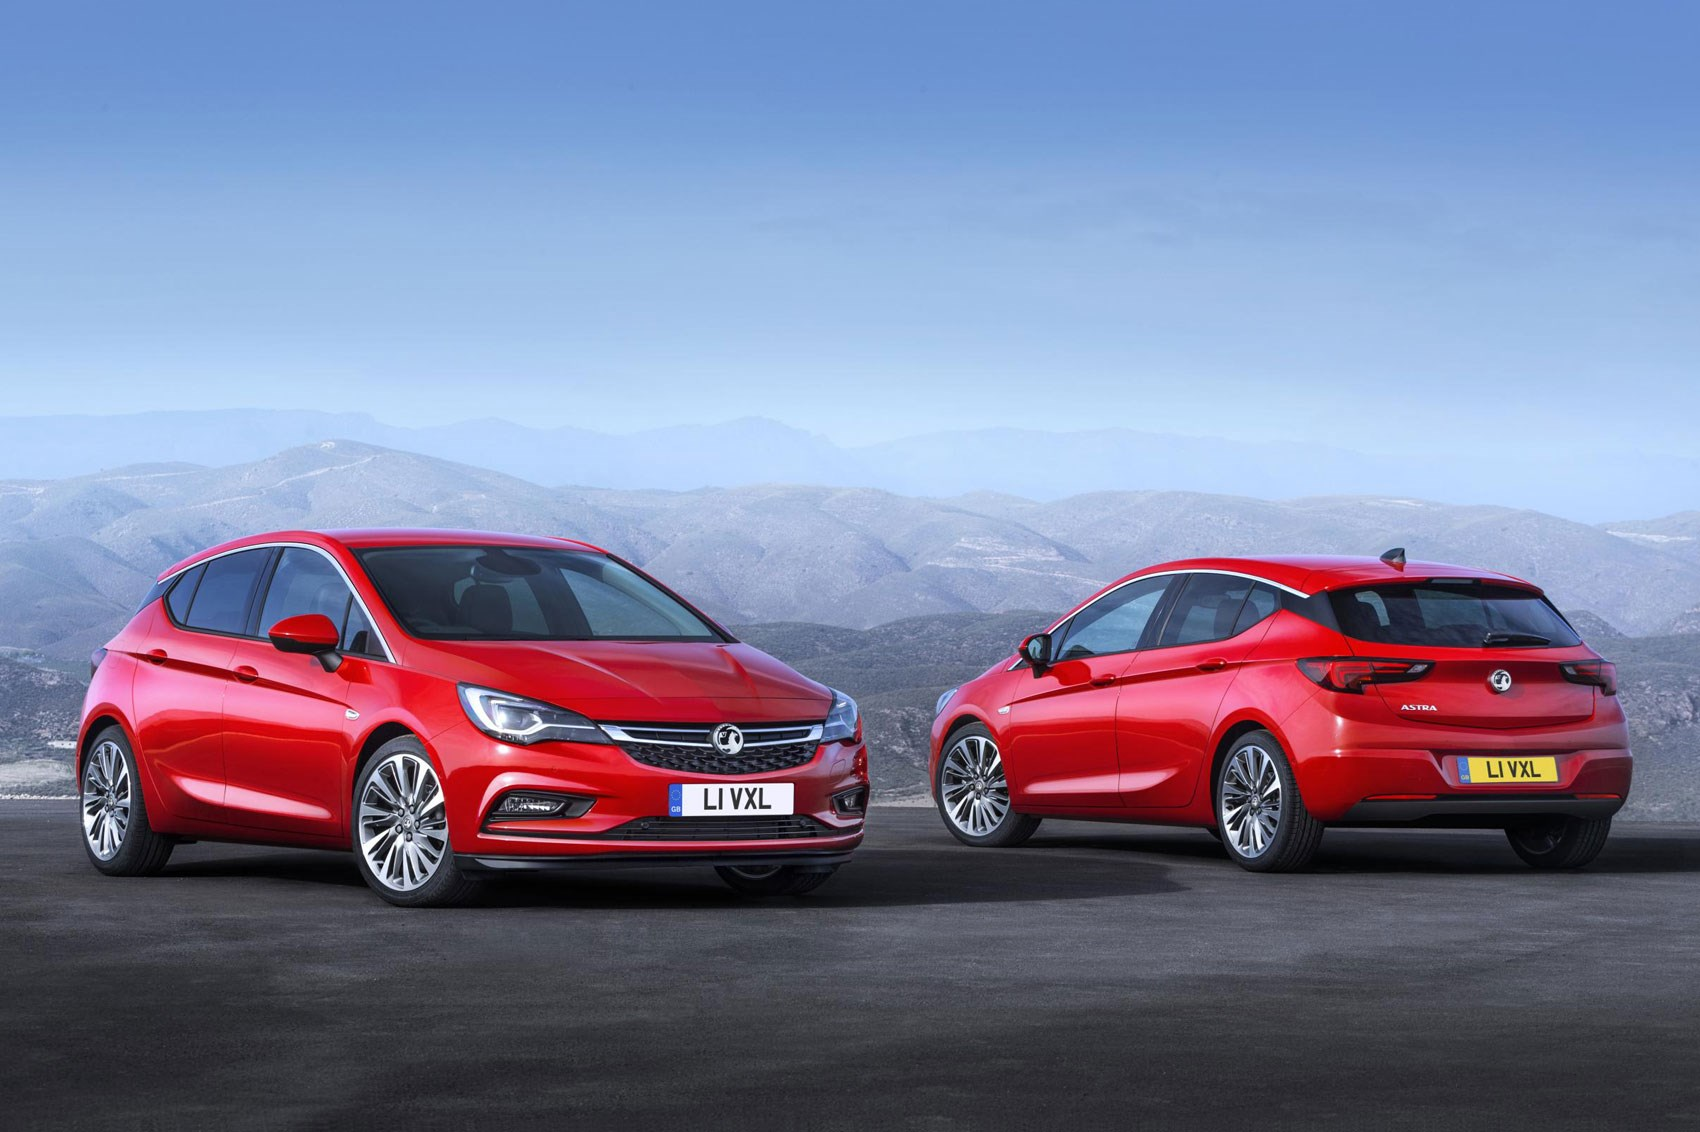 2015 vauxhall astra to start from 15k by car magazine. Black Bedroom Furniture Sets. Home Design Ideas